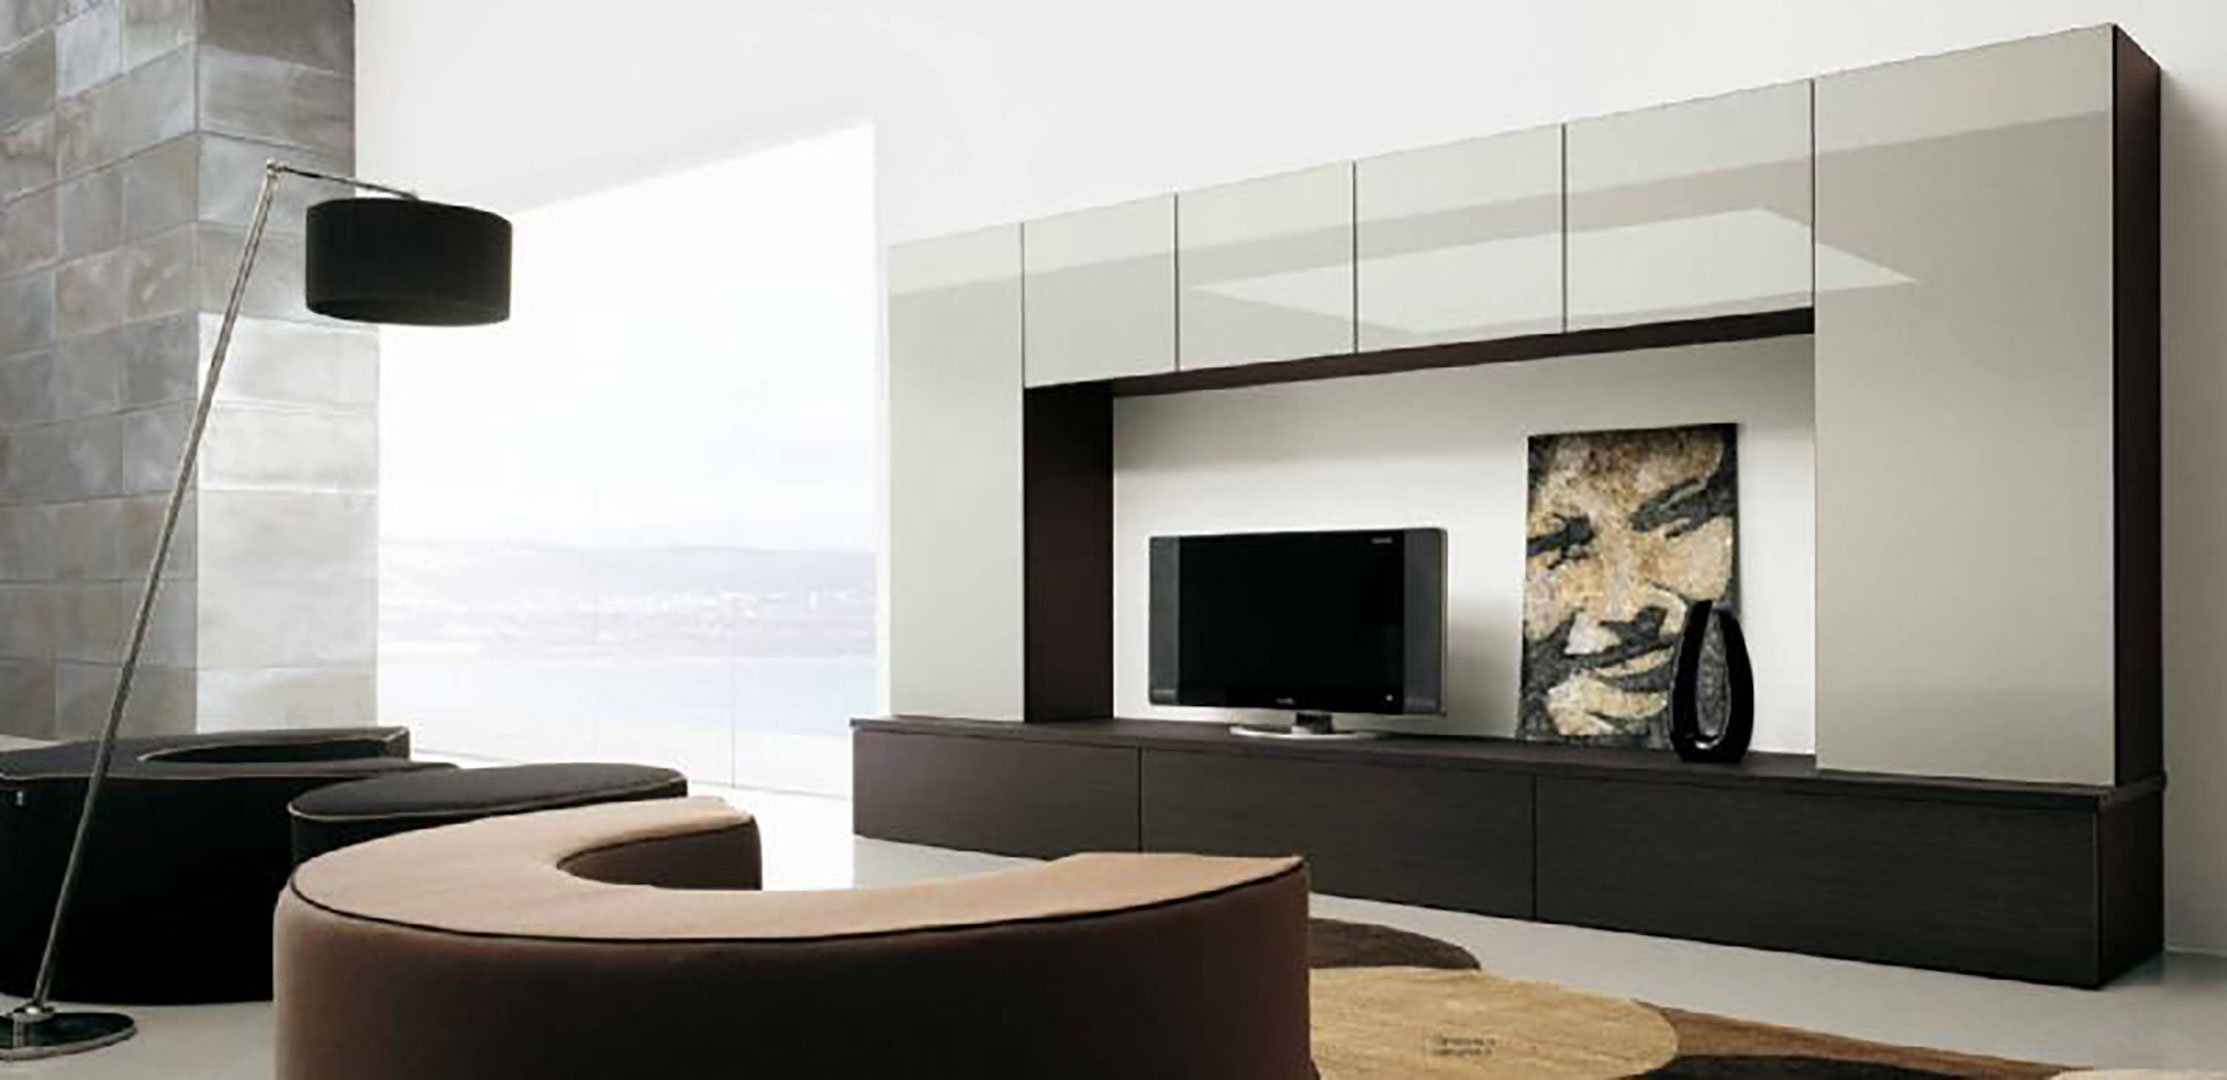 Furniture wall design